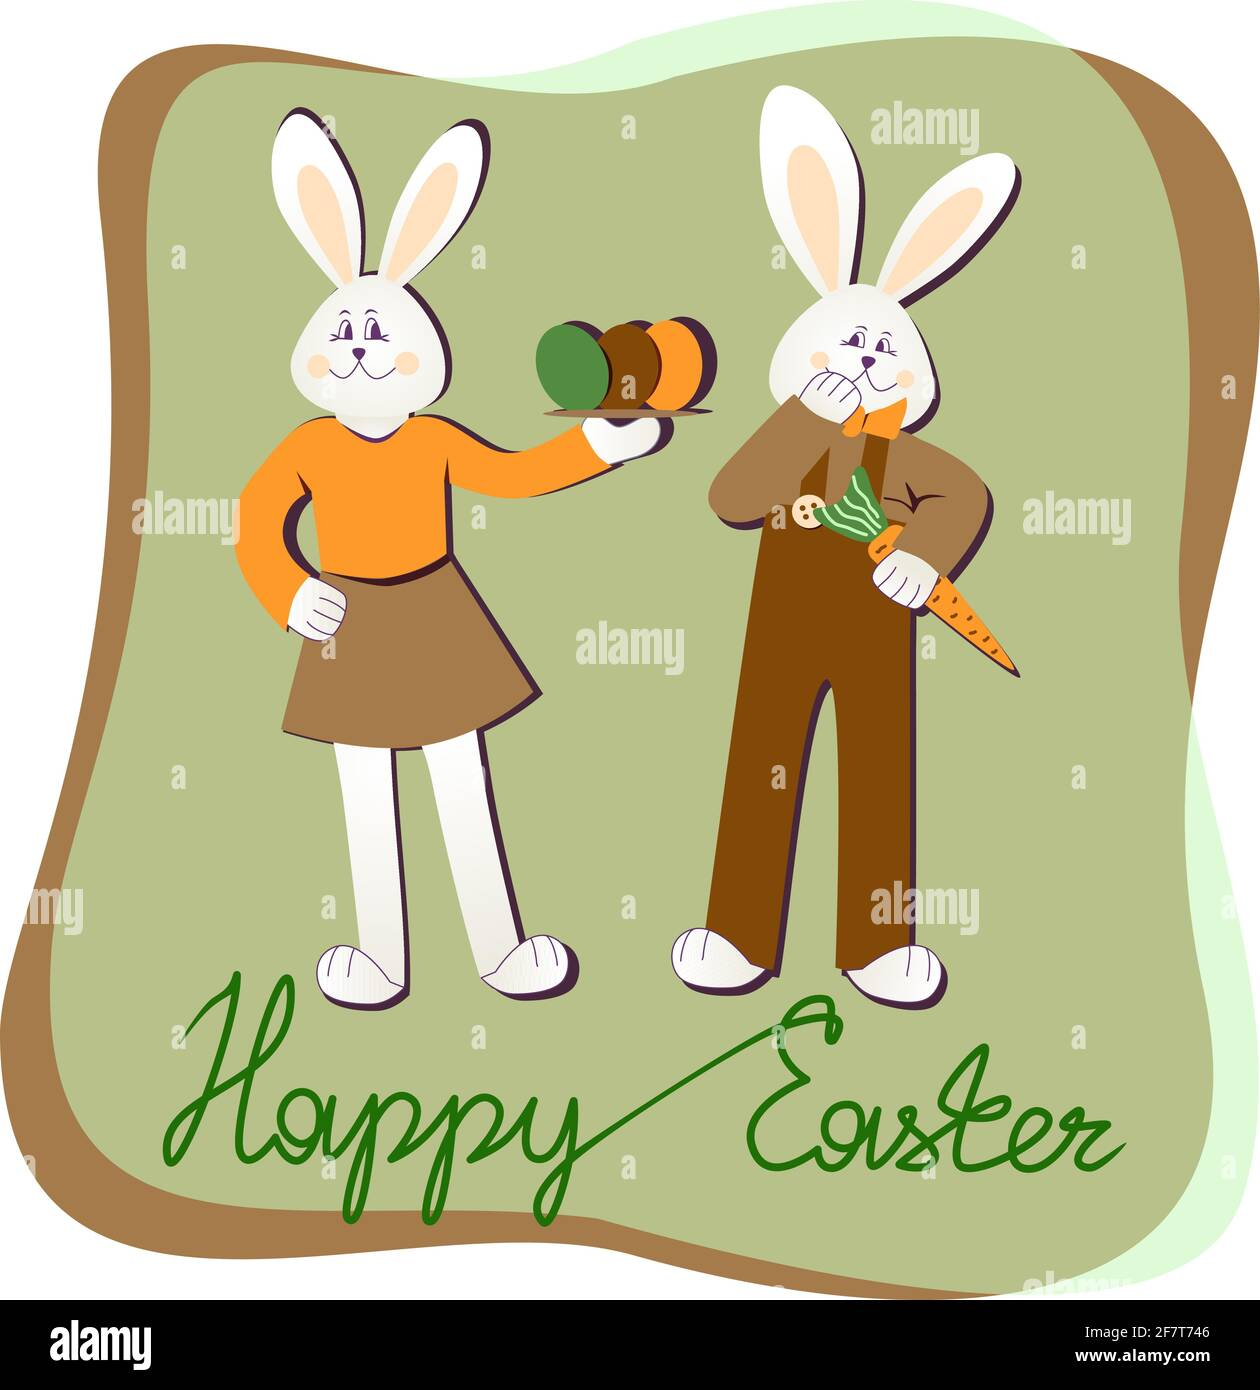 Easter Postcard High Resolution Stock Photography and Images   Alamy